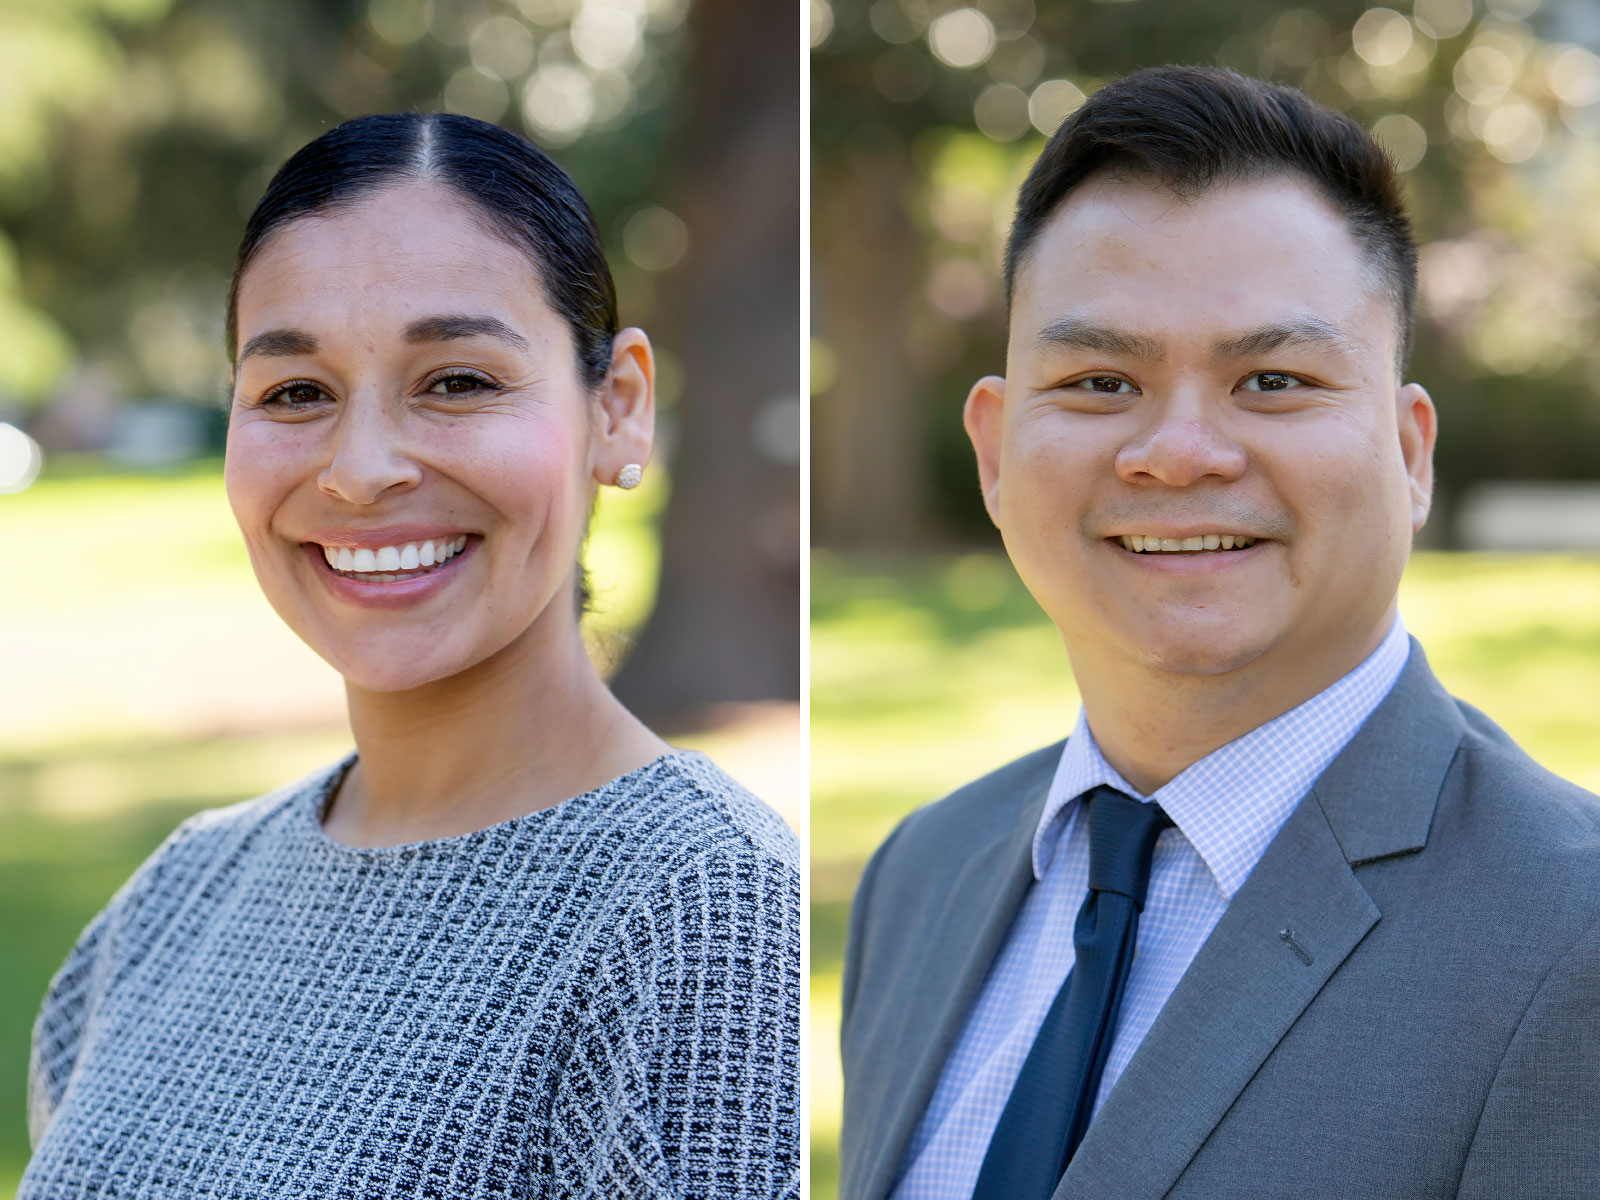 CaliforniaHealth+ Advocates Brings on New Team Members - Please join us in welcoming our two new staff to the CaliforniaHealth+ Advocates Team!